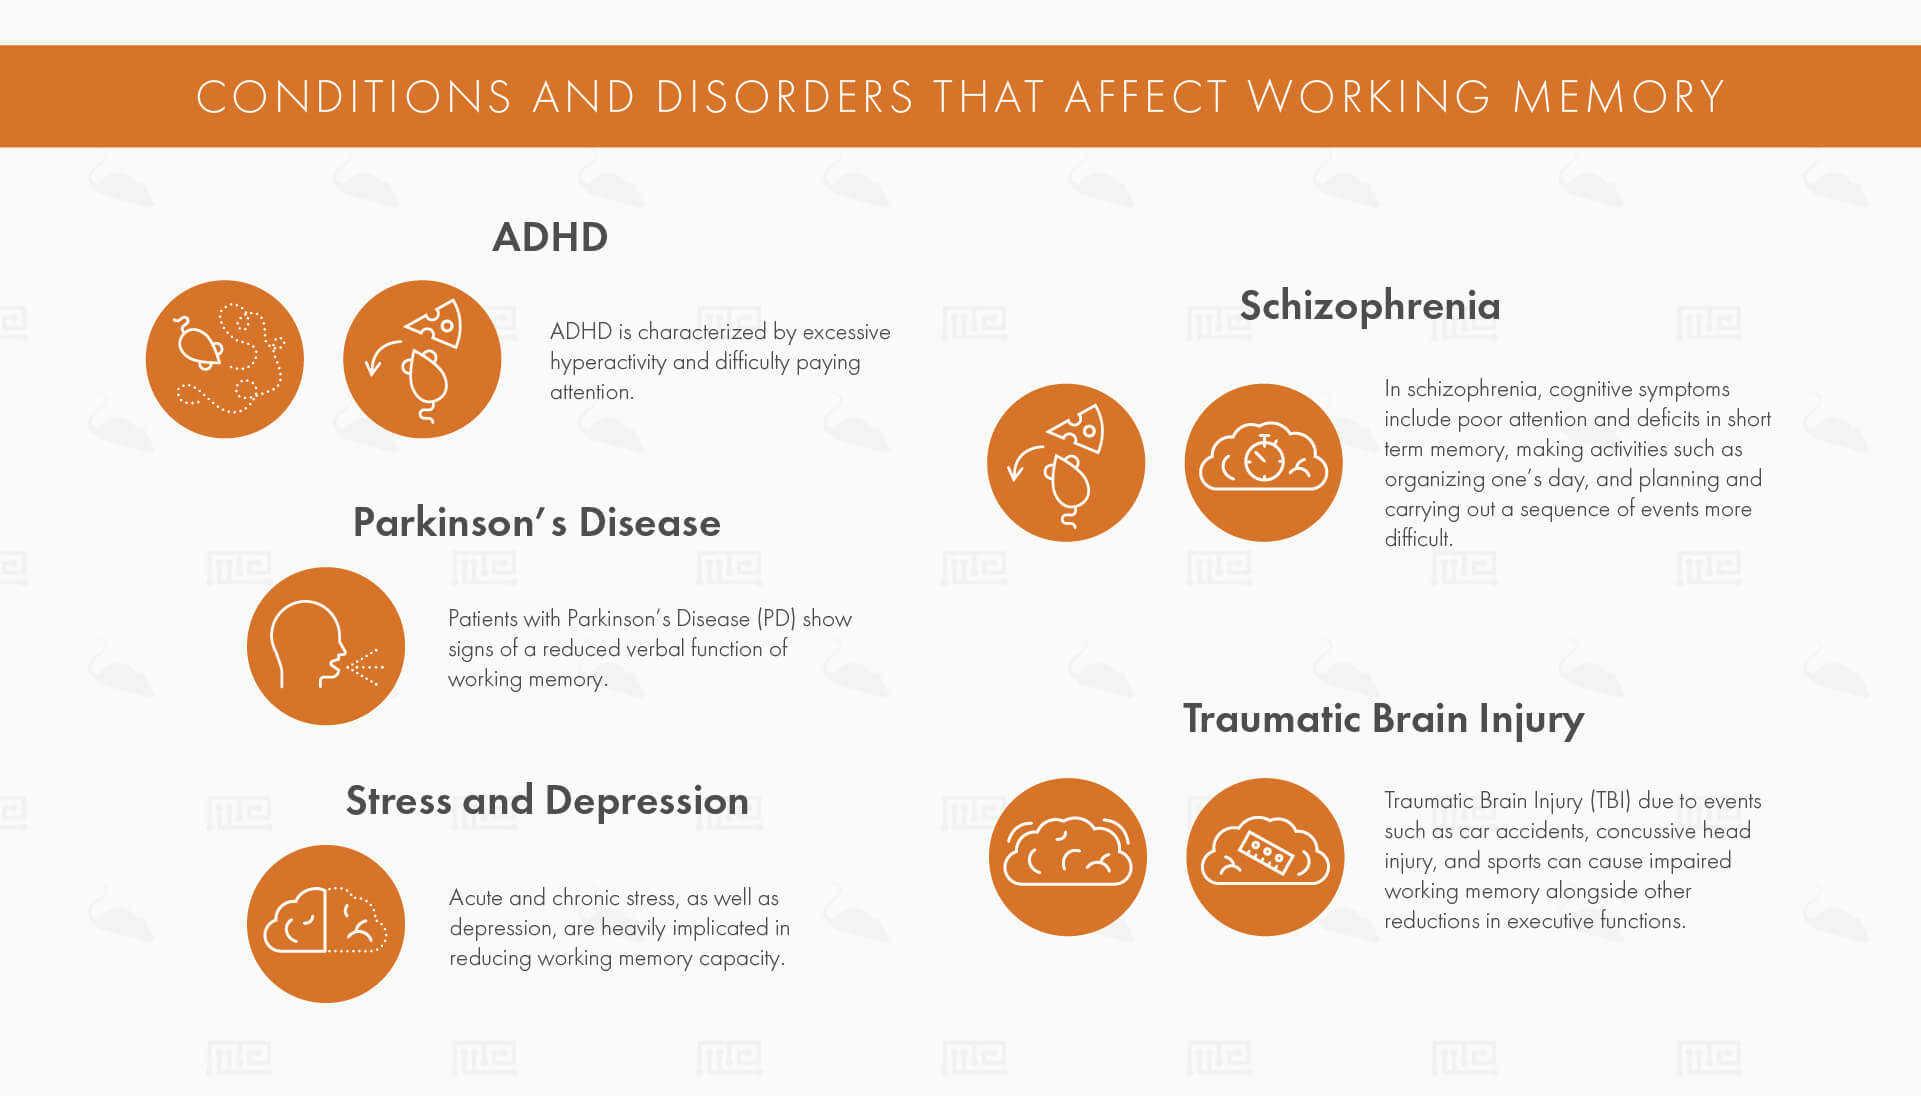 Conditions and Disorders that Affect Working Memory